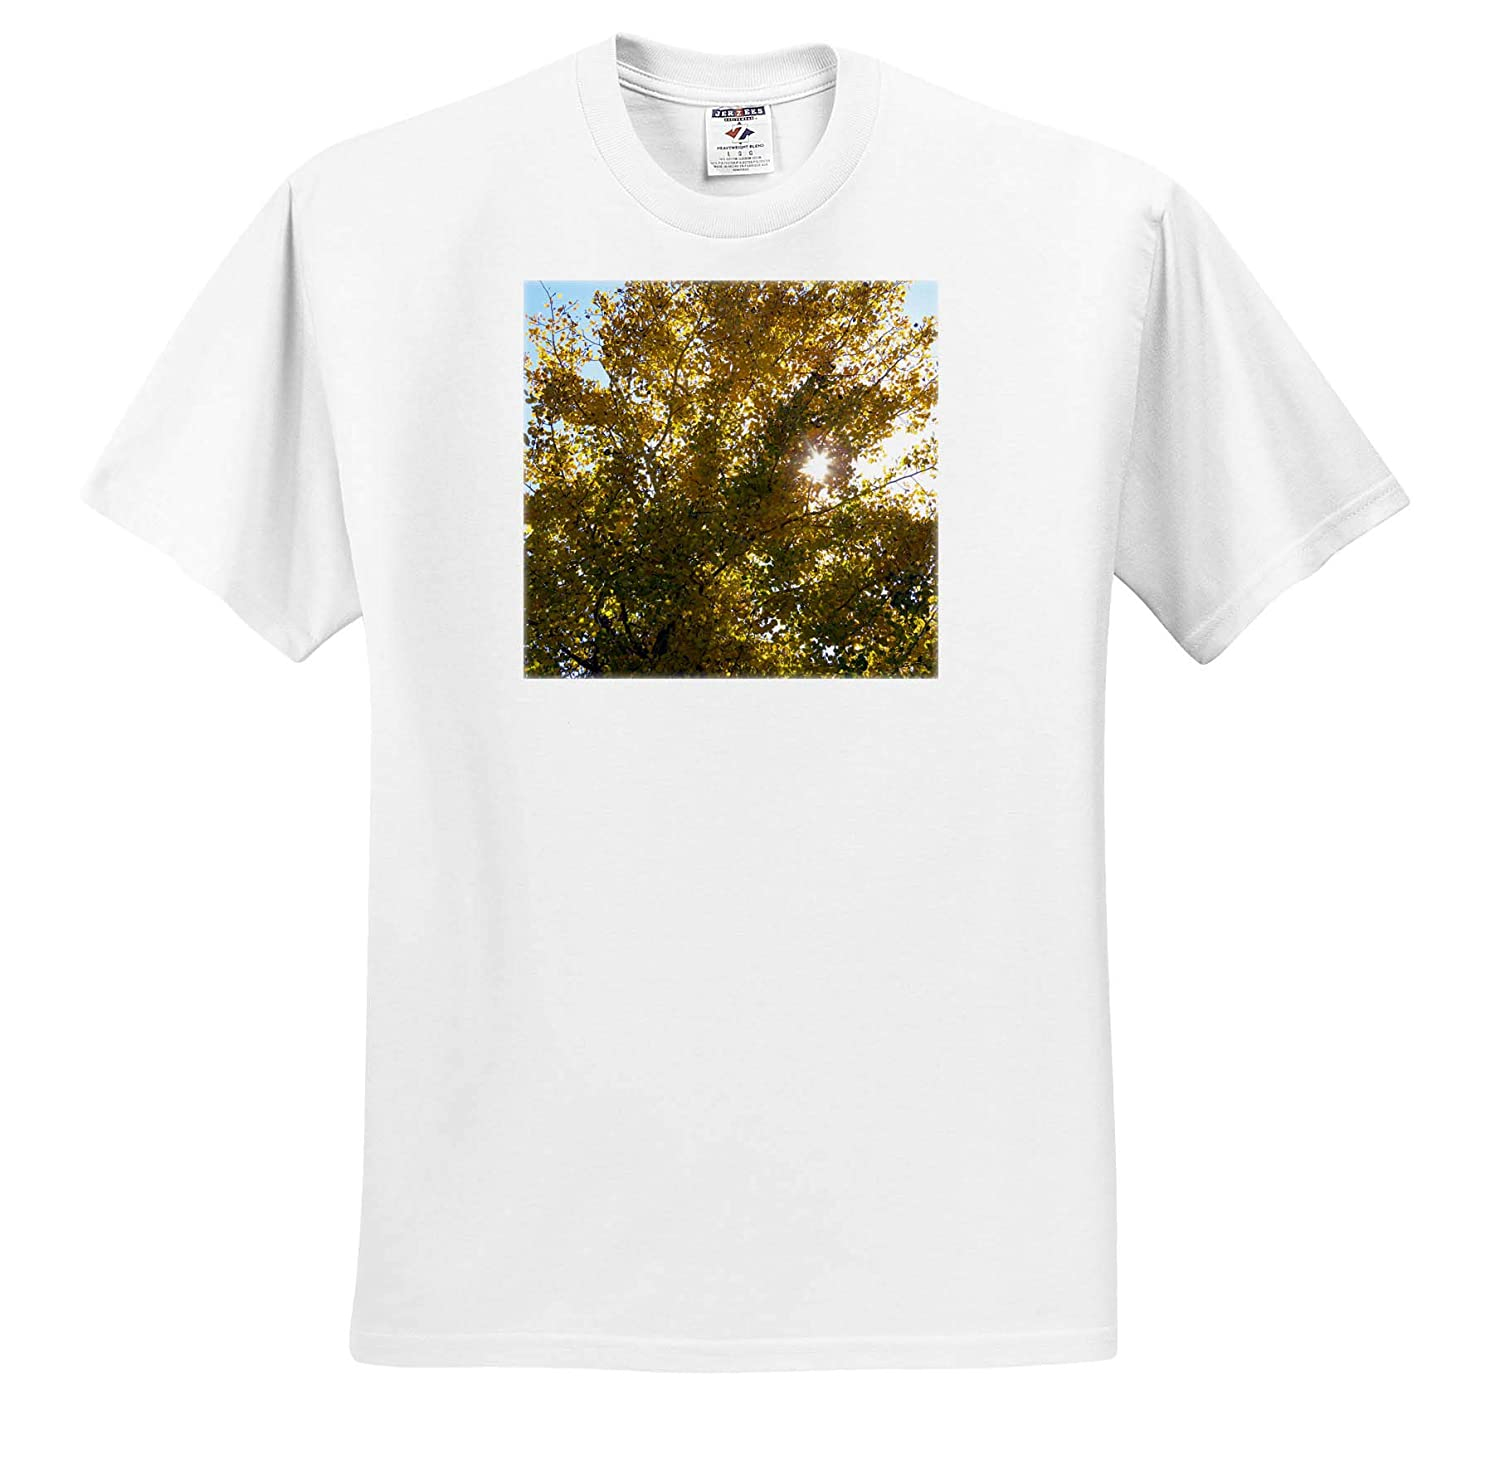 Starlight Between The Leaves on The Fall Golden Tree ts/_319021 Adult T-Shirt XL 3dRose Jos Fauxtographee- Starlight